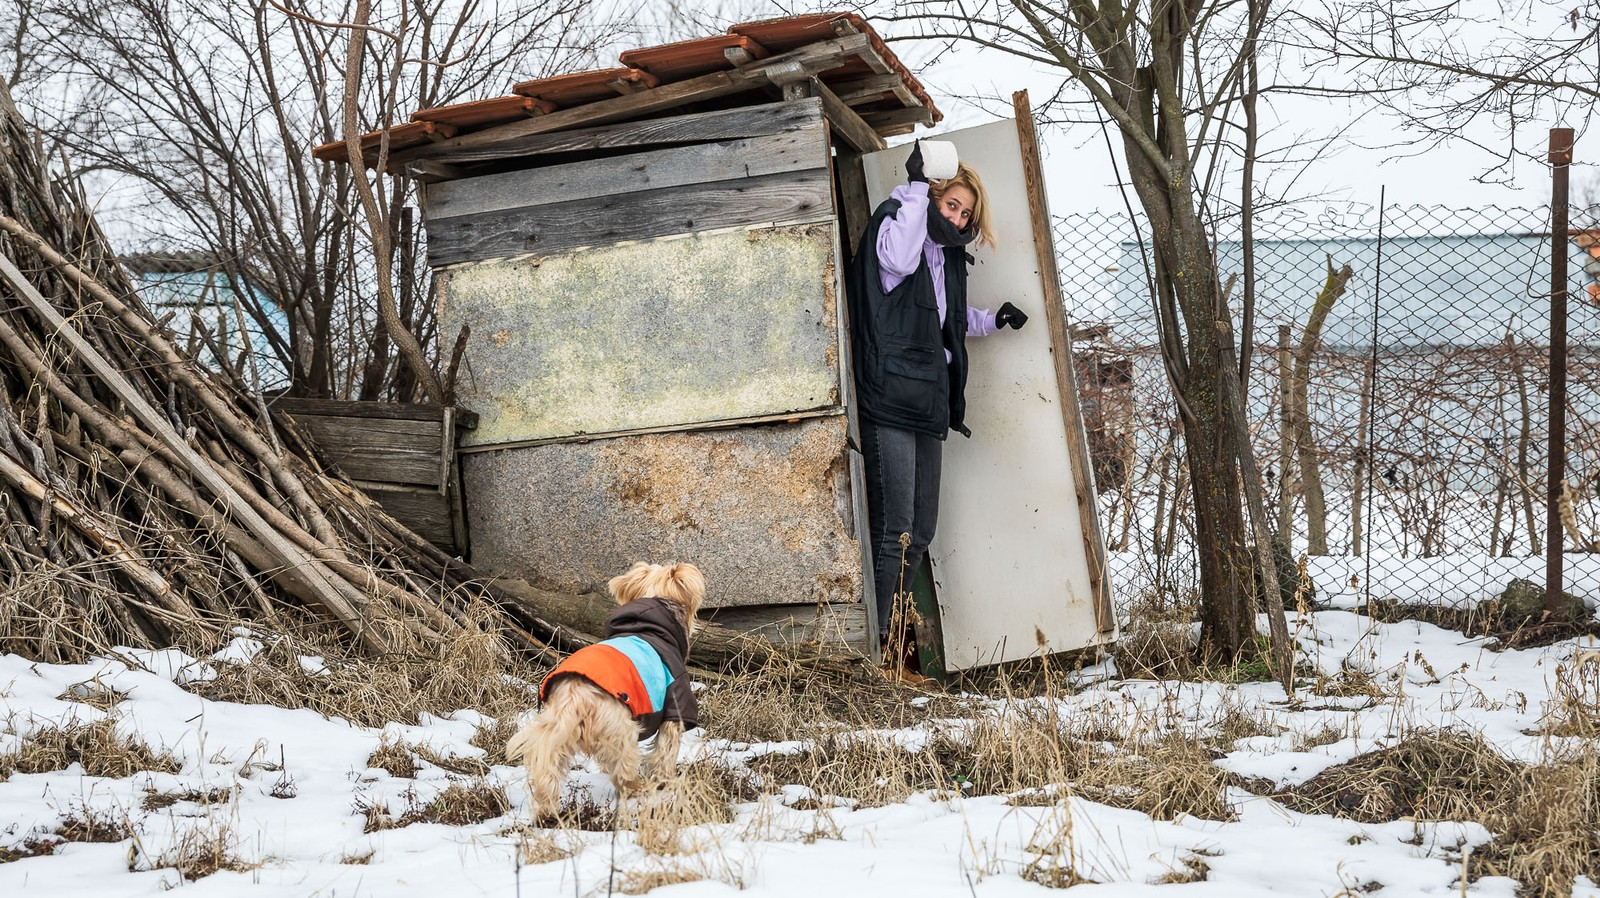 Staying in the Freezing Romanian Countryside Showed Me How People Live Without Plumbing